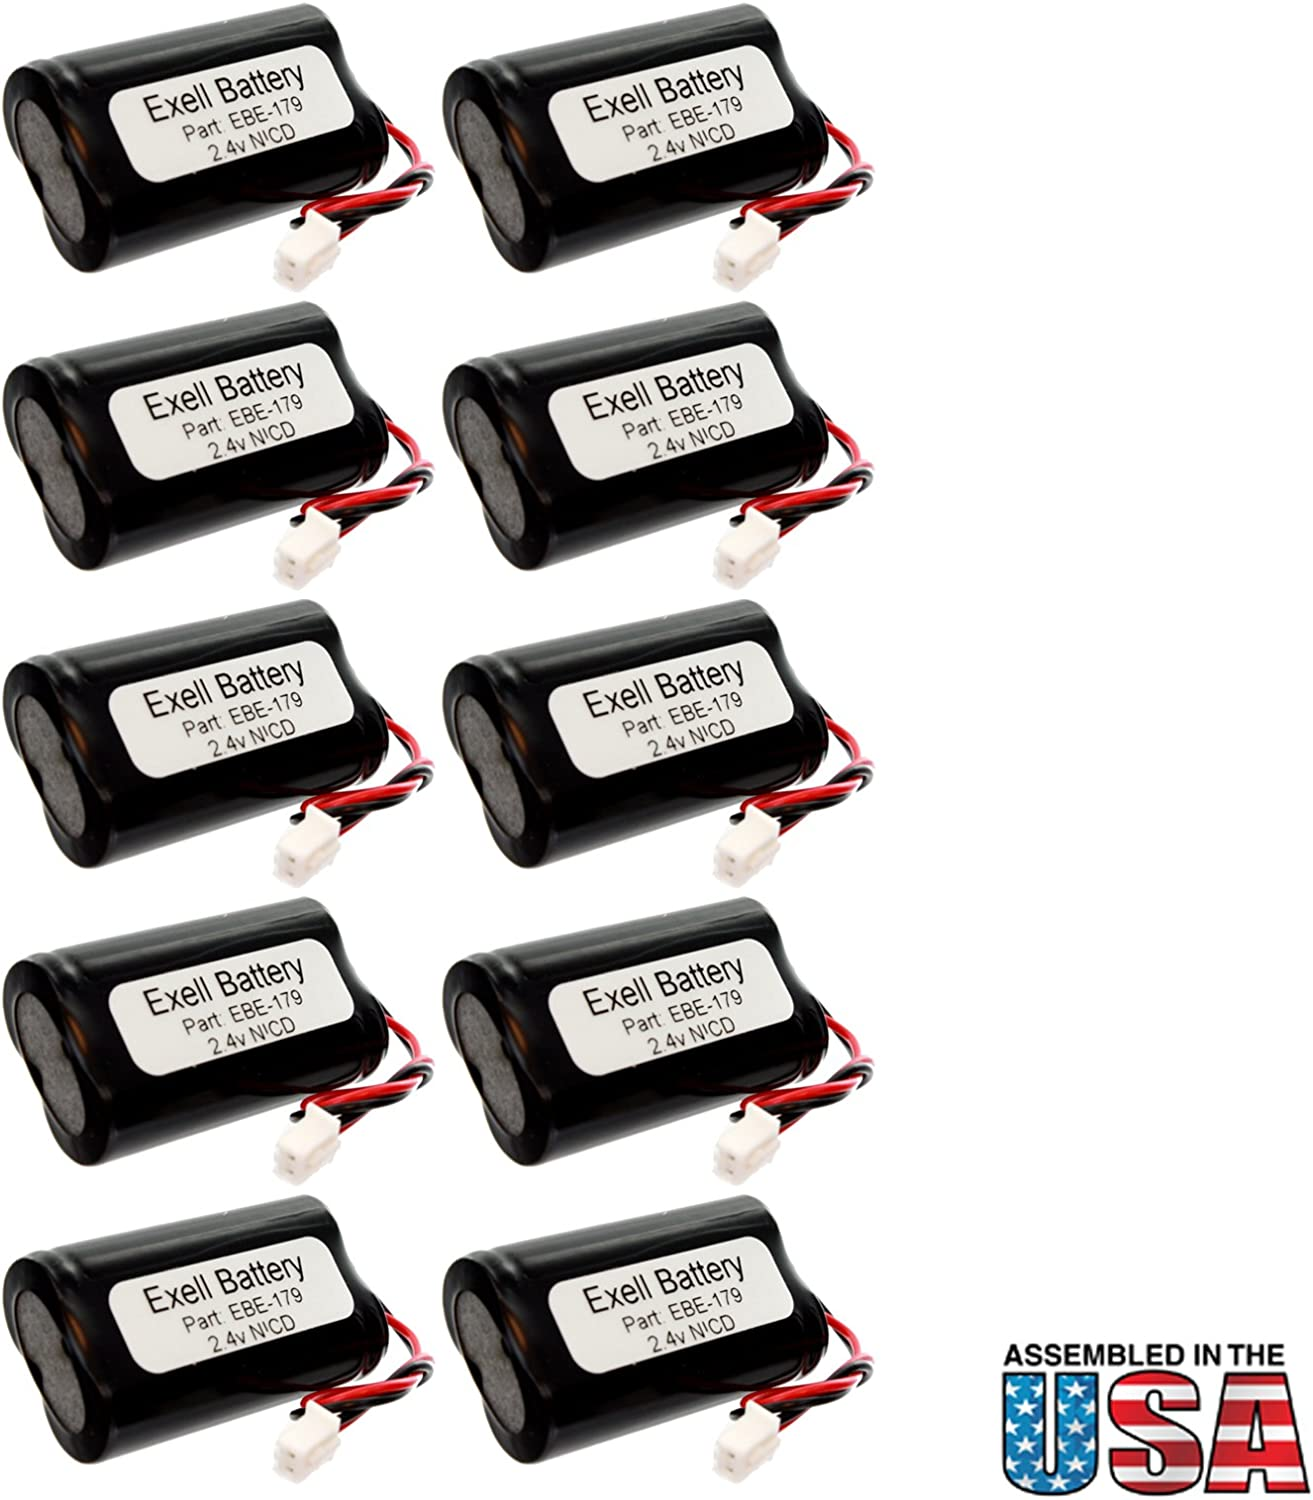 (10-Pack) Emergency/Exit Lighting Battery Fits and Replaces Exitronix 10010036 Exitronix 10010034 P/N6200RP 6200RP 6200 RP Custom-179 Custom179 BEL-179 BEL179 Interstate Batteries NIC1394 71e2I2BrwM9L